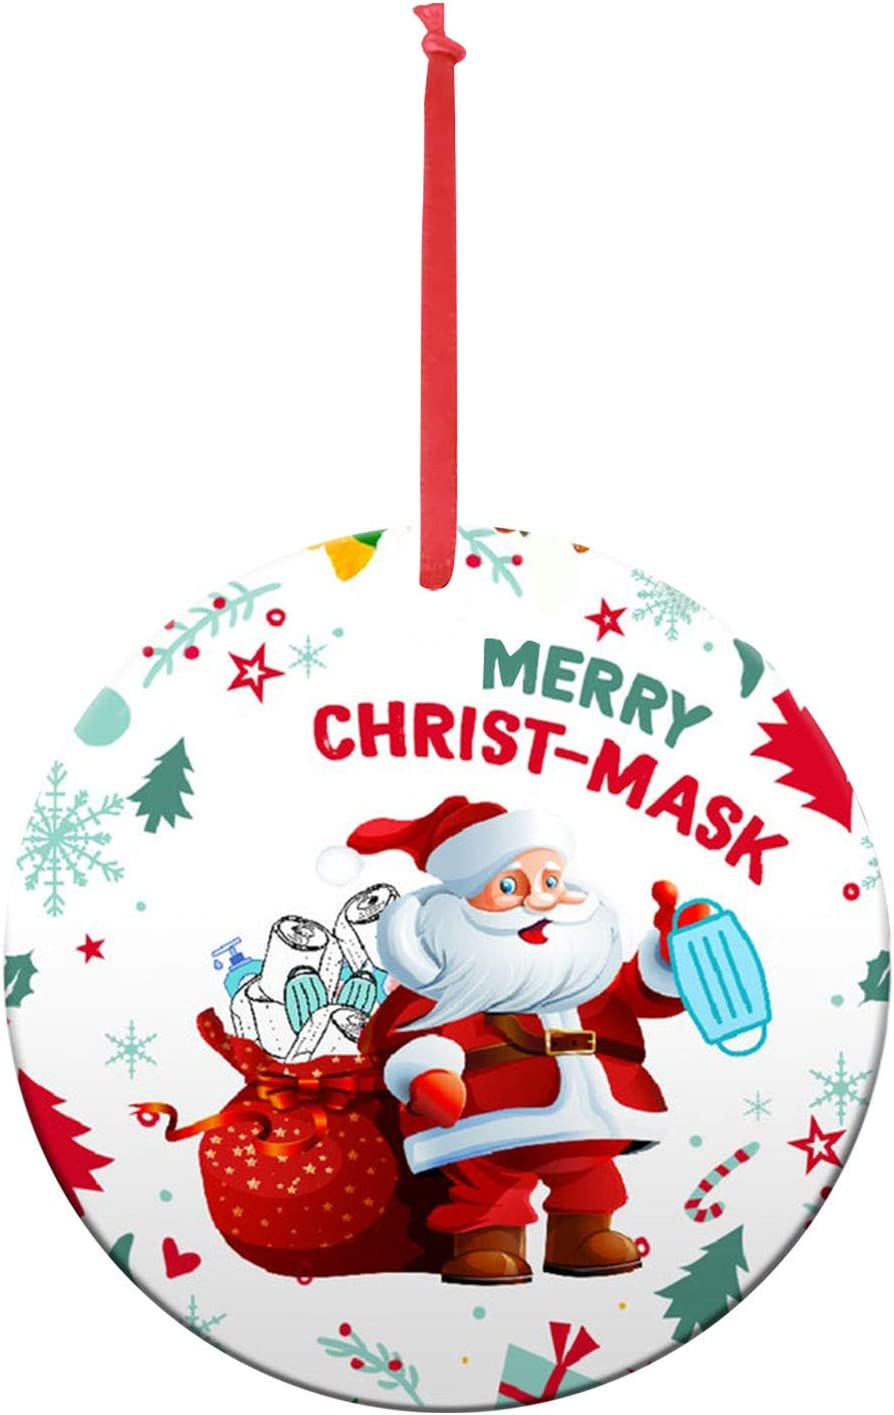 Shan-S Christmas Ornaments Personalized Wood Cute Santa Clause Wearing Mask Handmade Toilet Paper Ornament 2020 Xmas Tree Decoration Holiday Present Creative New Year Gift for Home Decor